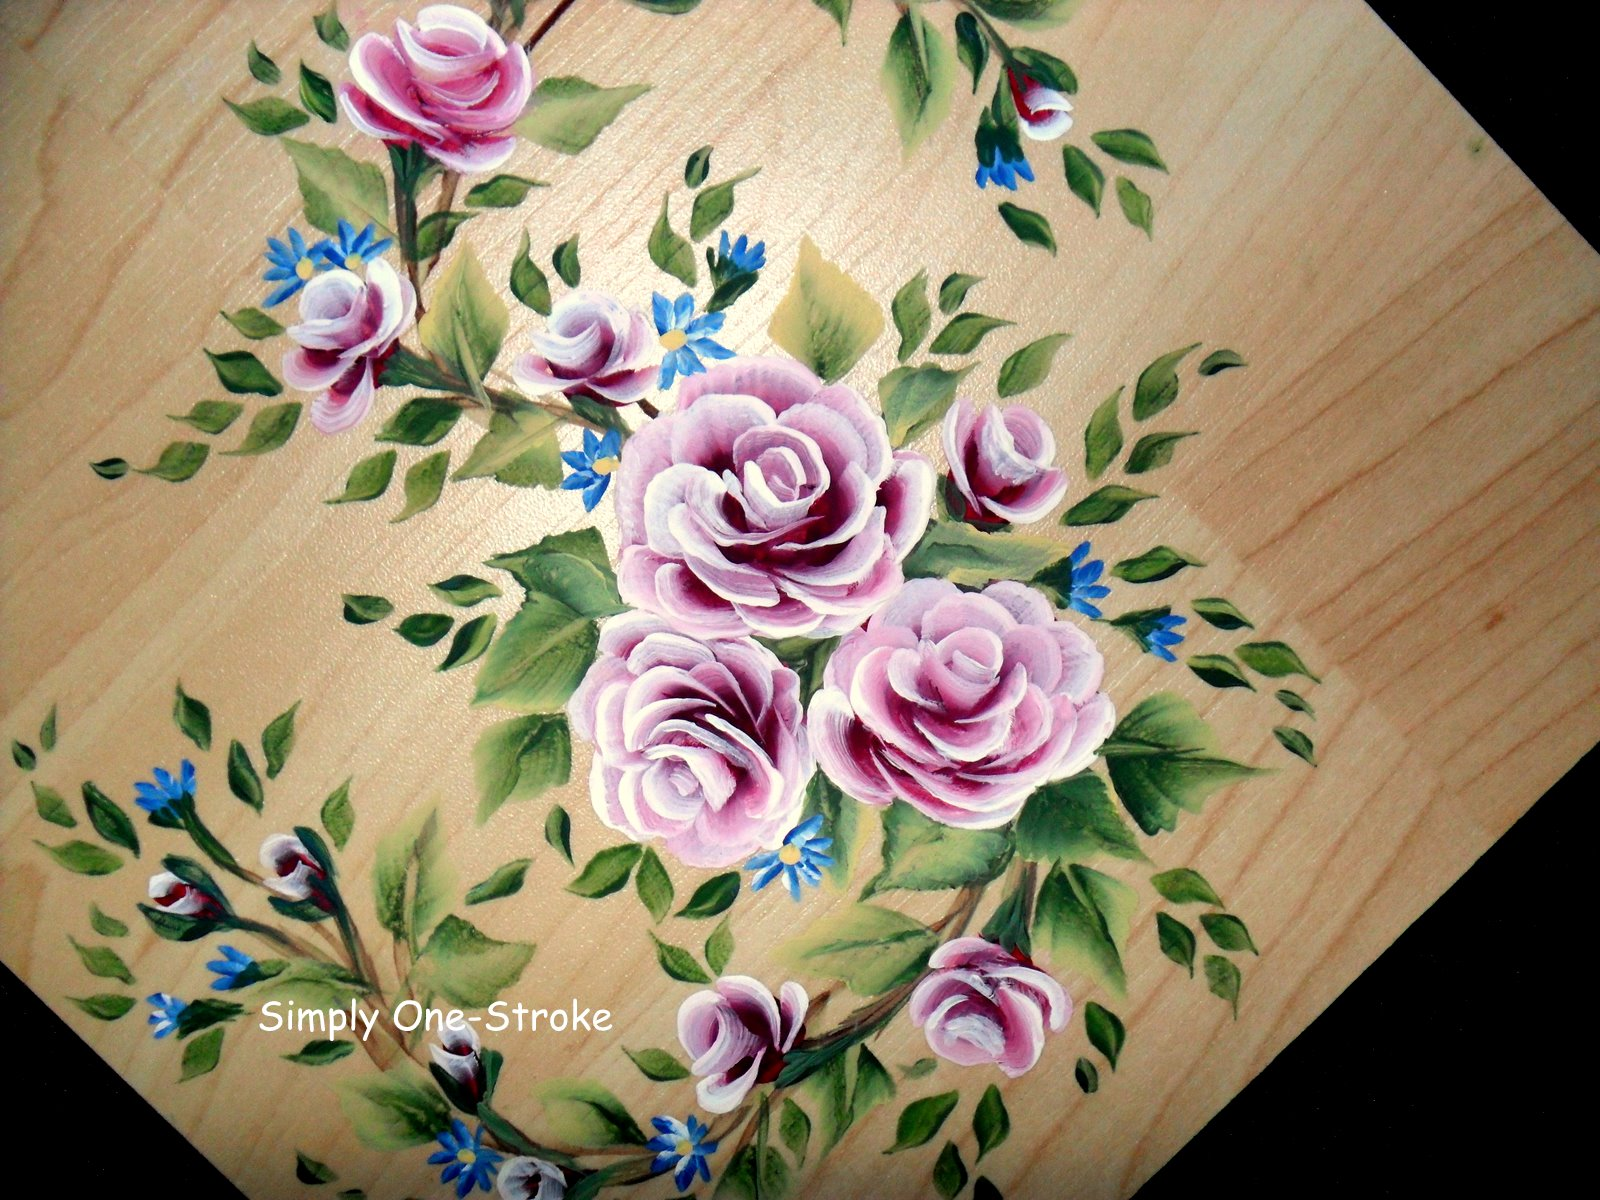 Simply One Stroke Roses On A Wood Tile